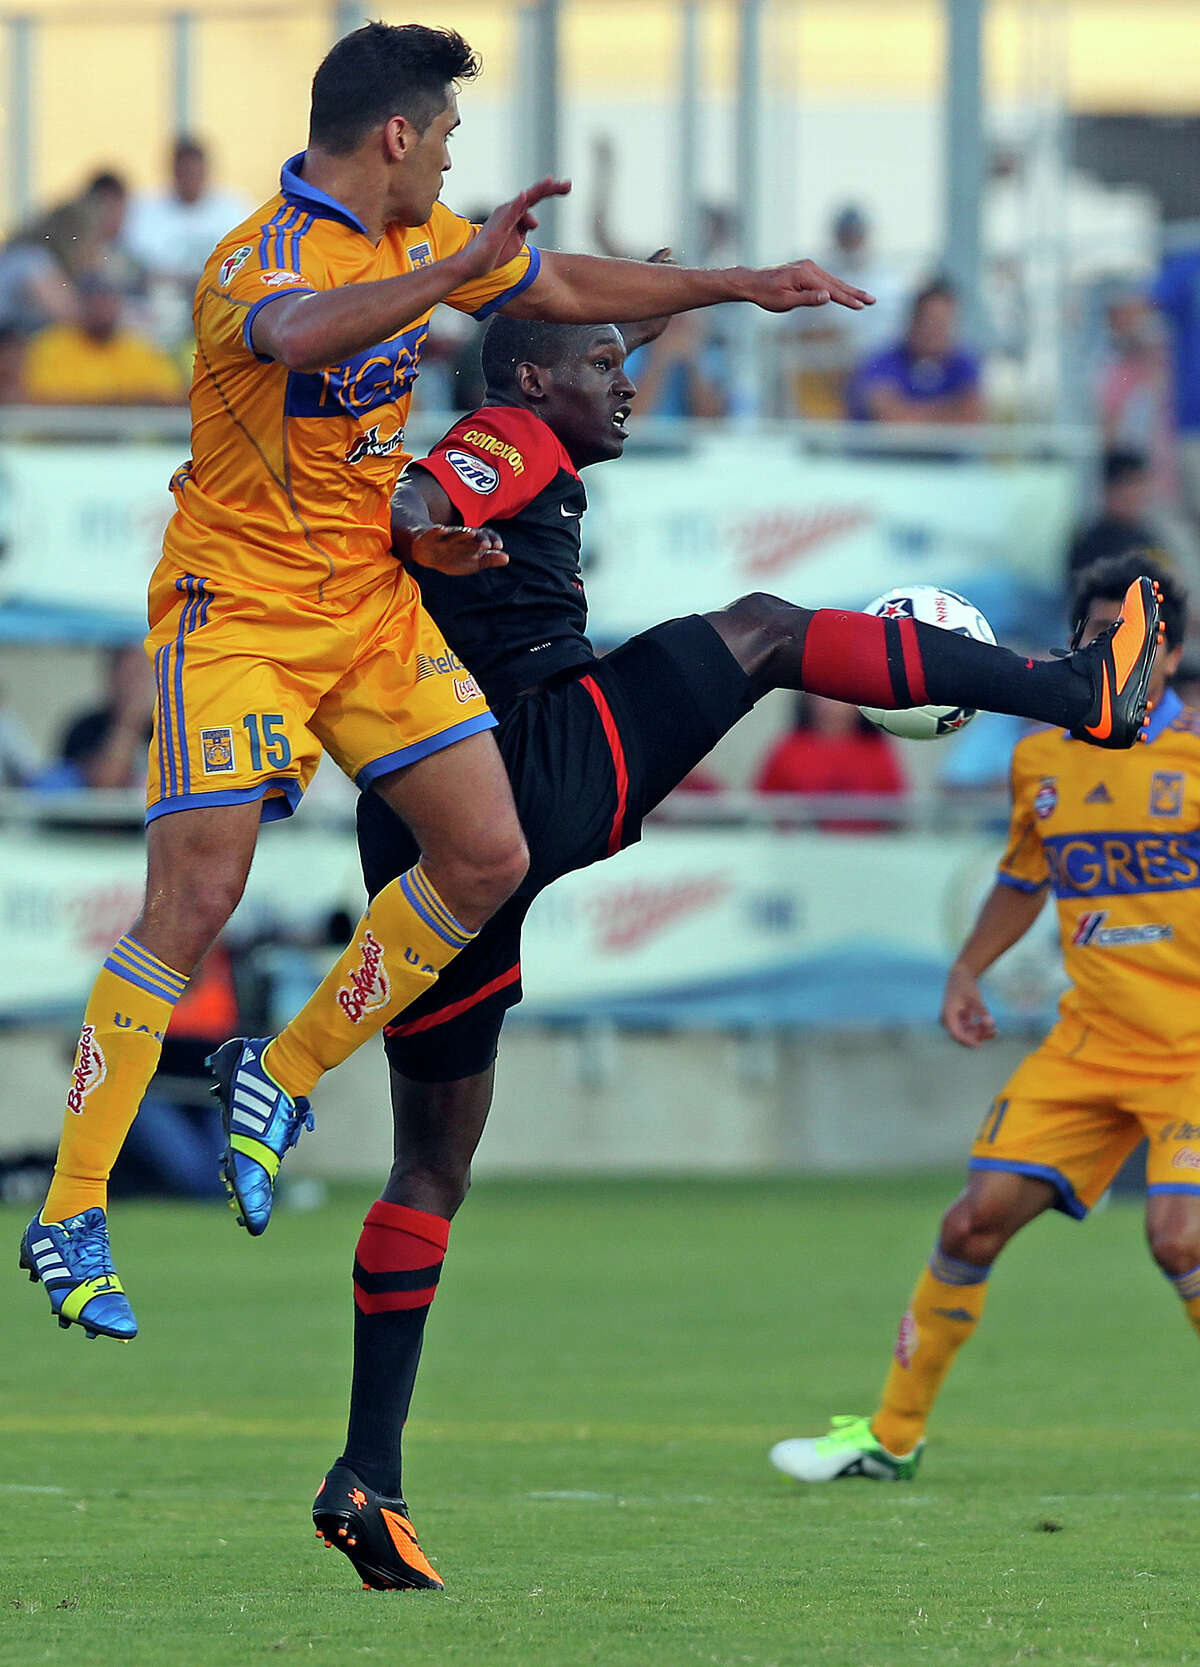 San Antonio's Fabrice Noel works the ball in the air against Manuel Viniegra as the Scorpions host the UNAL Tigres at Toyota Field on July 6, 2013.